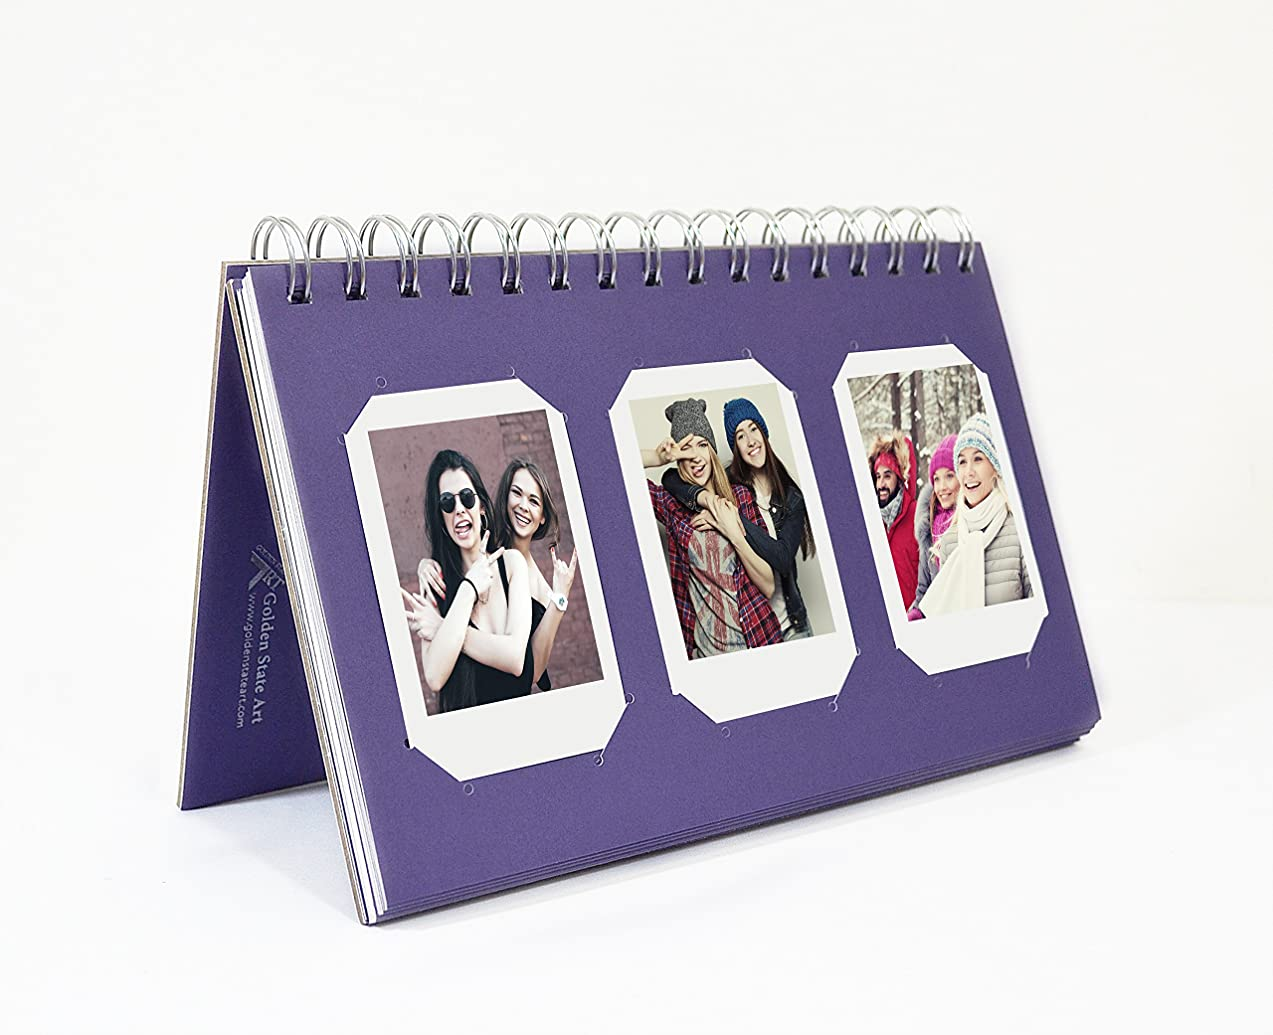 Golden State Art, Instax Frames Collection, Purple Photo Album Book Style, 60 Pockets, for Camera Fuijufilm Instax Mini 7S 8 70 90 25 50S 8+ Film